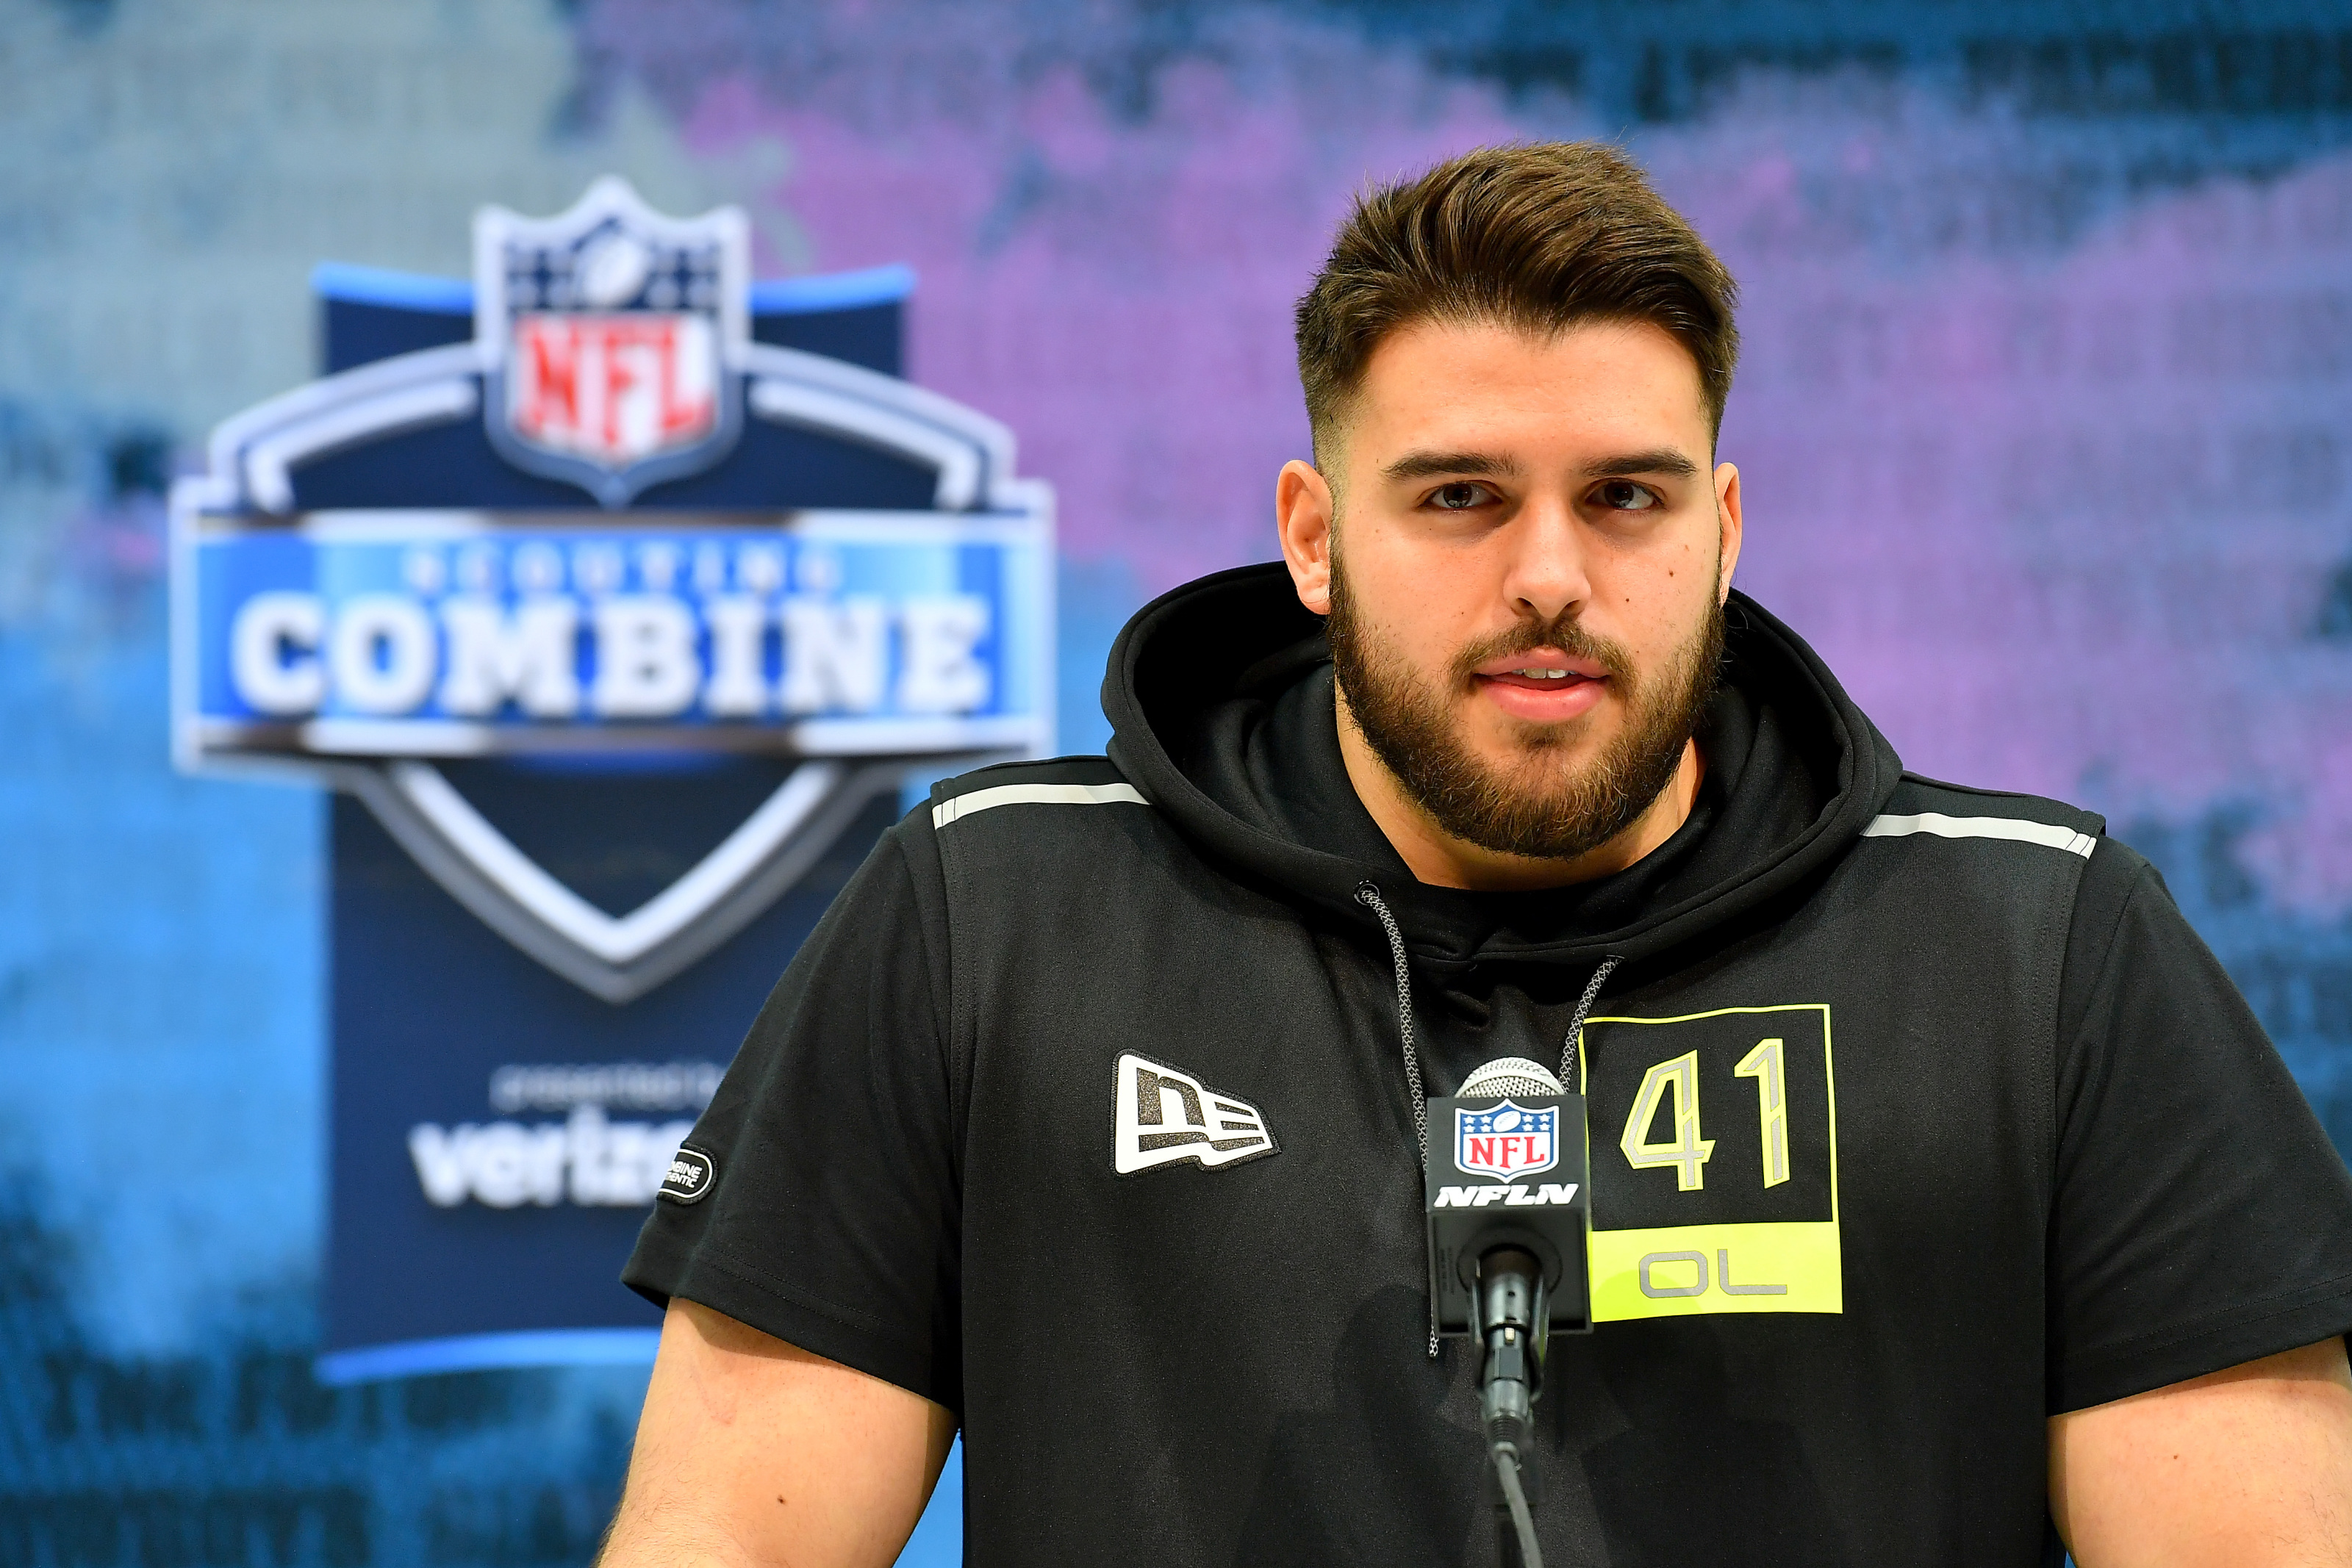 Jon Runyan Jr. could join his role model with the Tennessee Titans